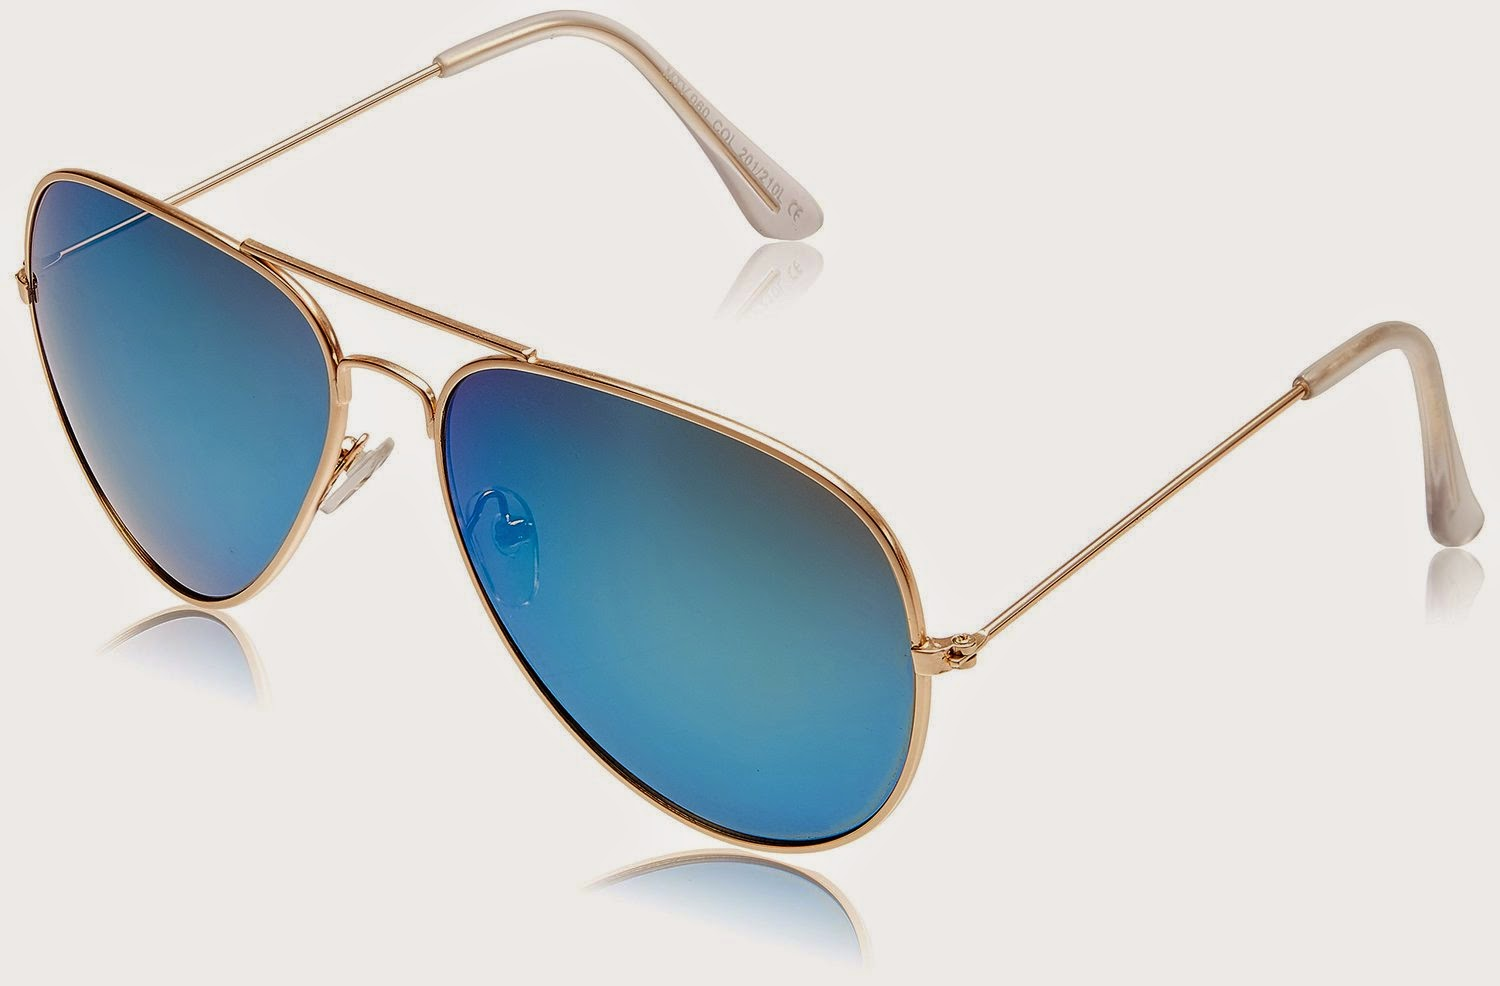 Buy MTV Aviator Sunglasses (Medium Light Gold)  Rs. 405 only at Amazon.